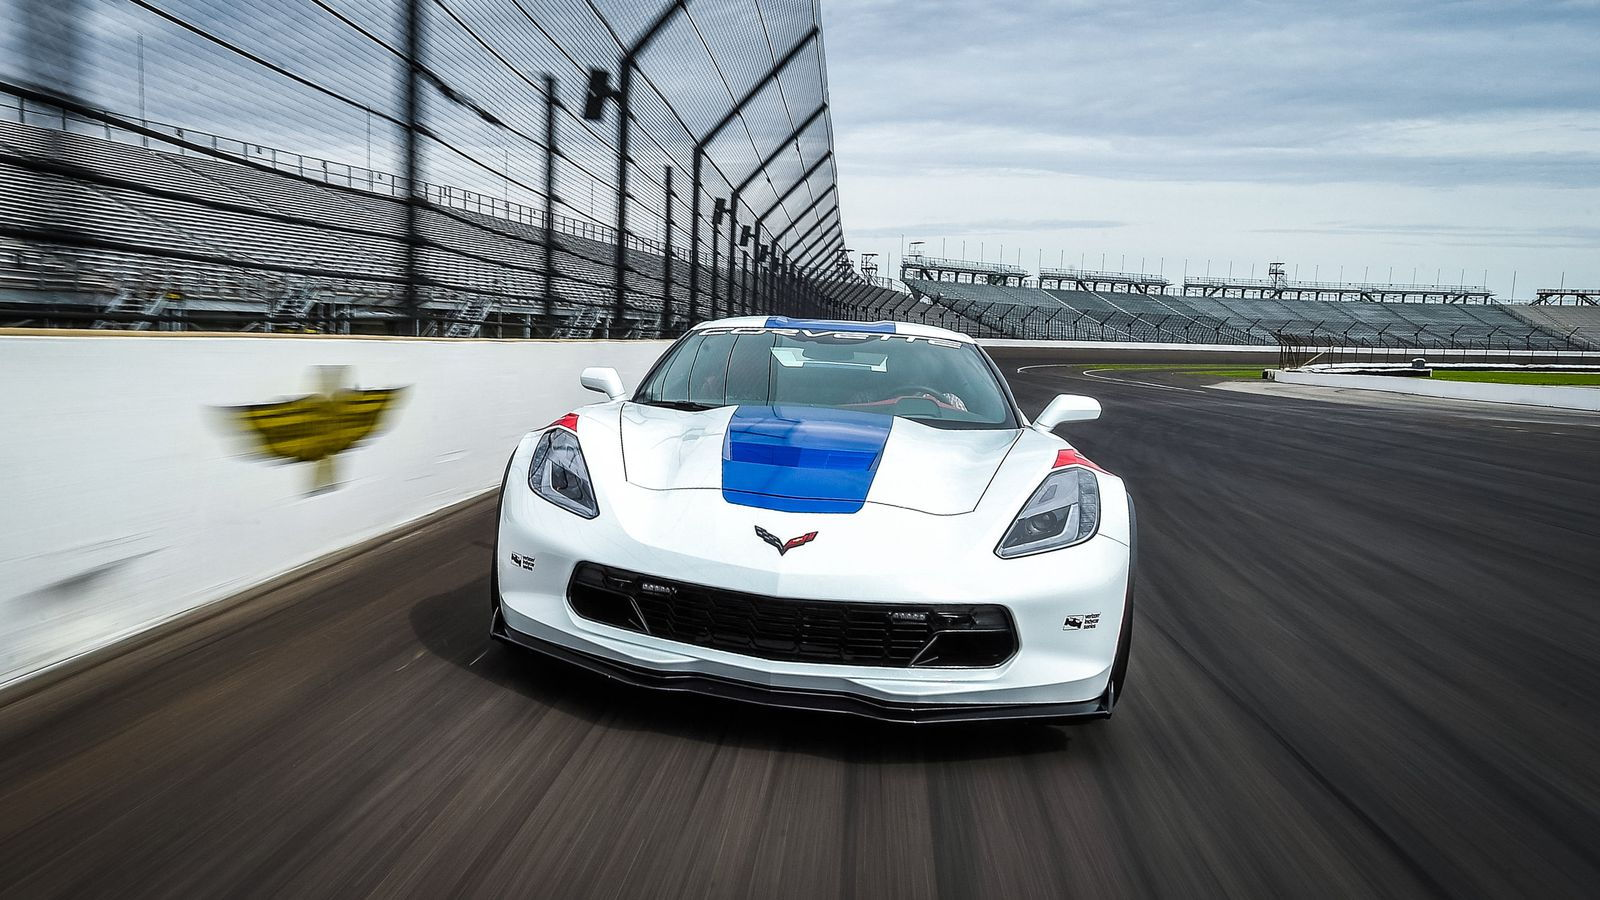 6 Insider Tips on How to Become a Pro Driver